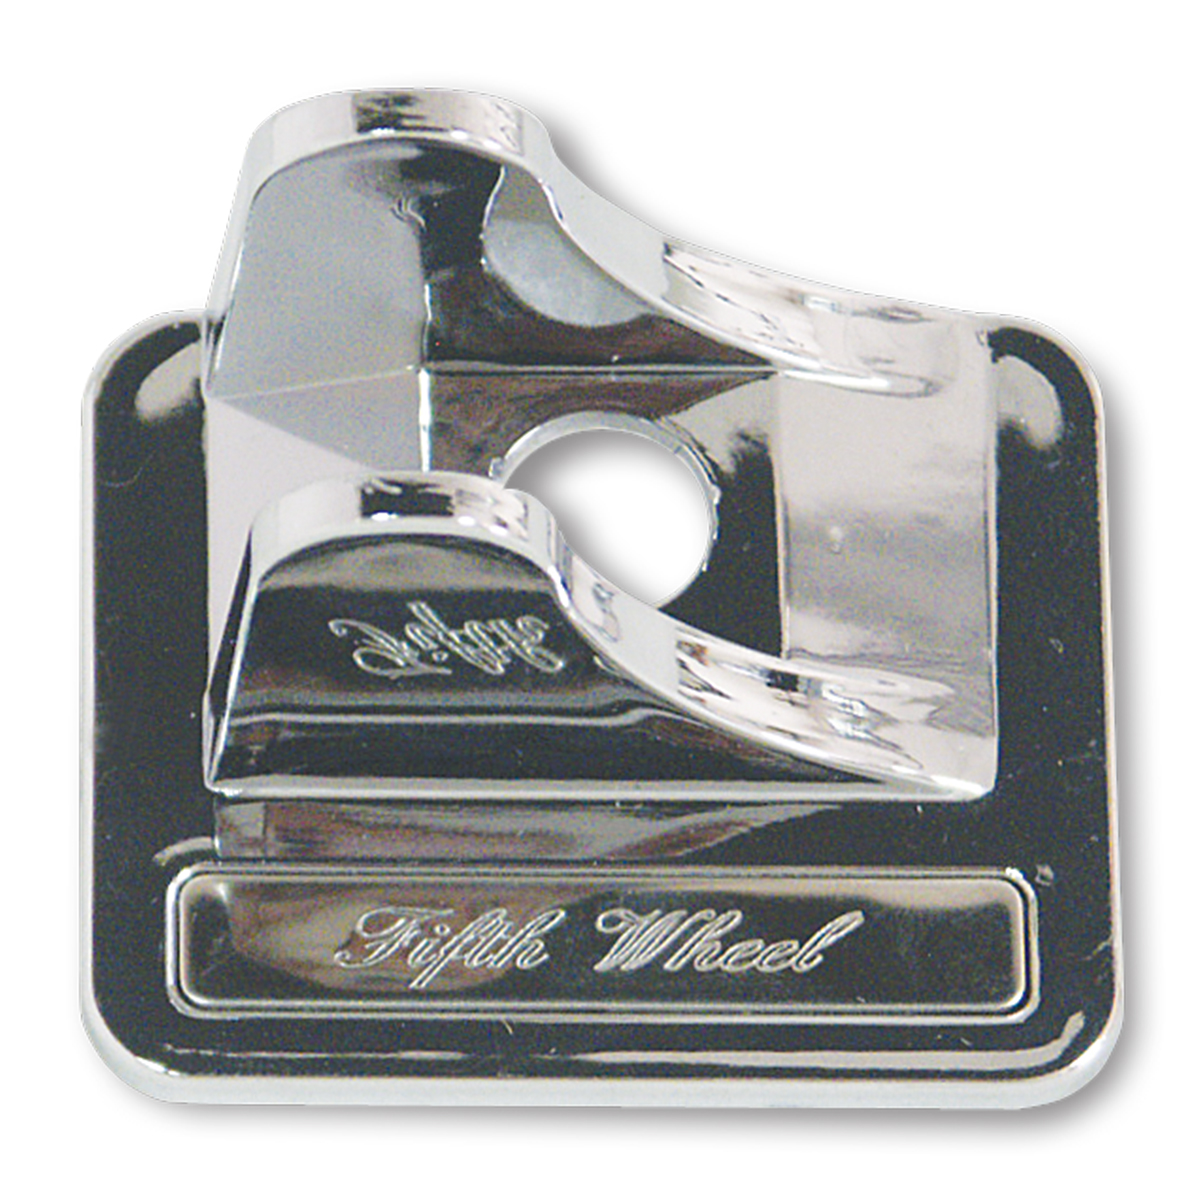 Switch Guard w/ 5th Wheel Stainless Steel Script for KW